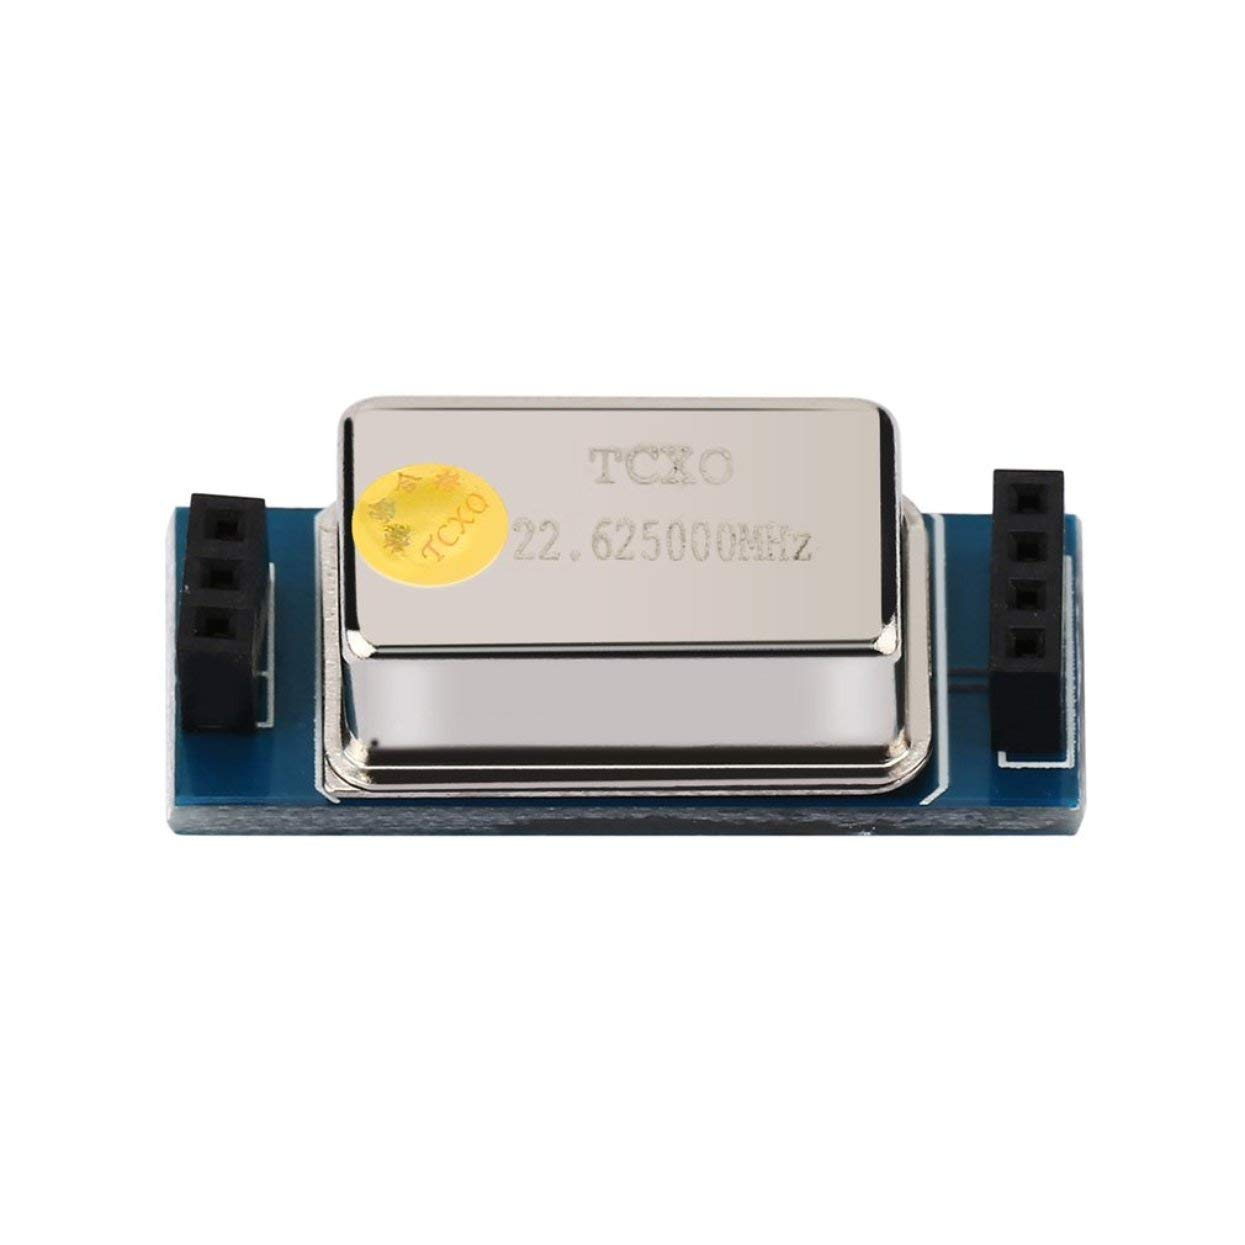 1Pcs Compensated Crystal TCXO Module Compatible for FT-817/857/897 TCXO-9 22.625MHZ High Stability TCXO Components Module